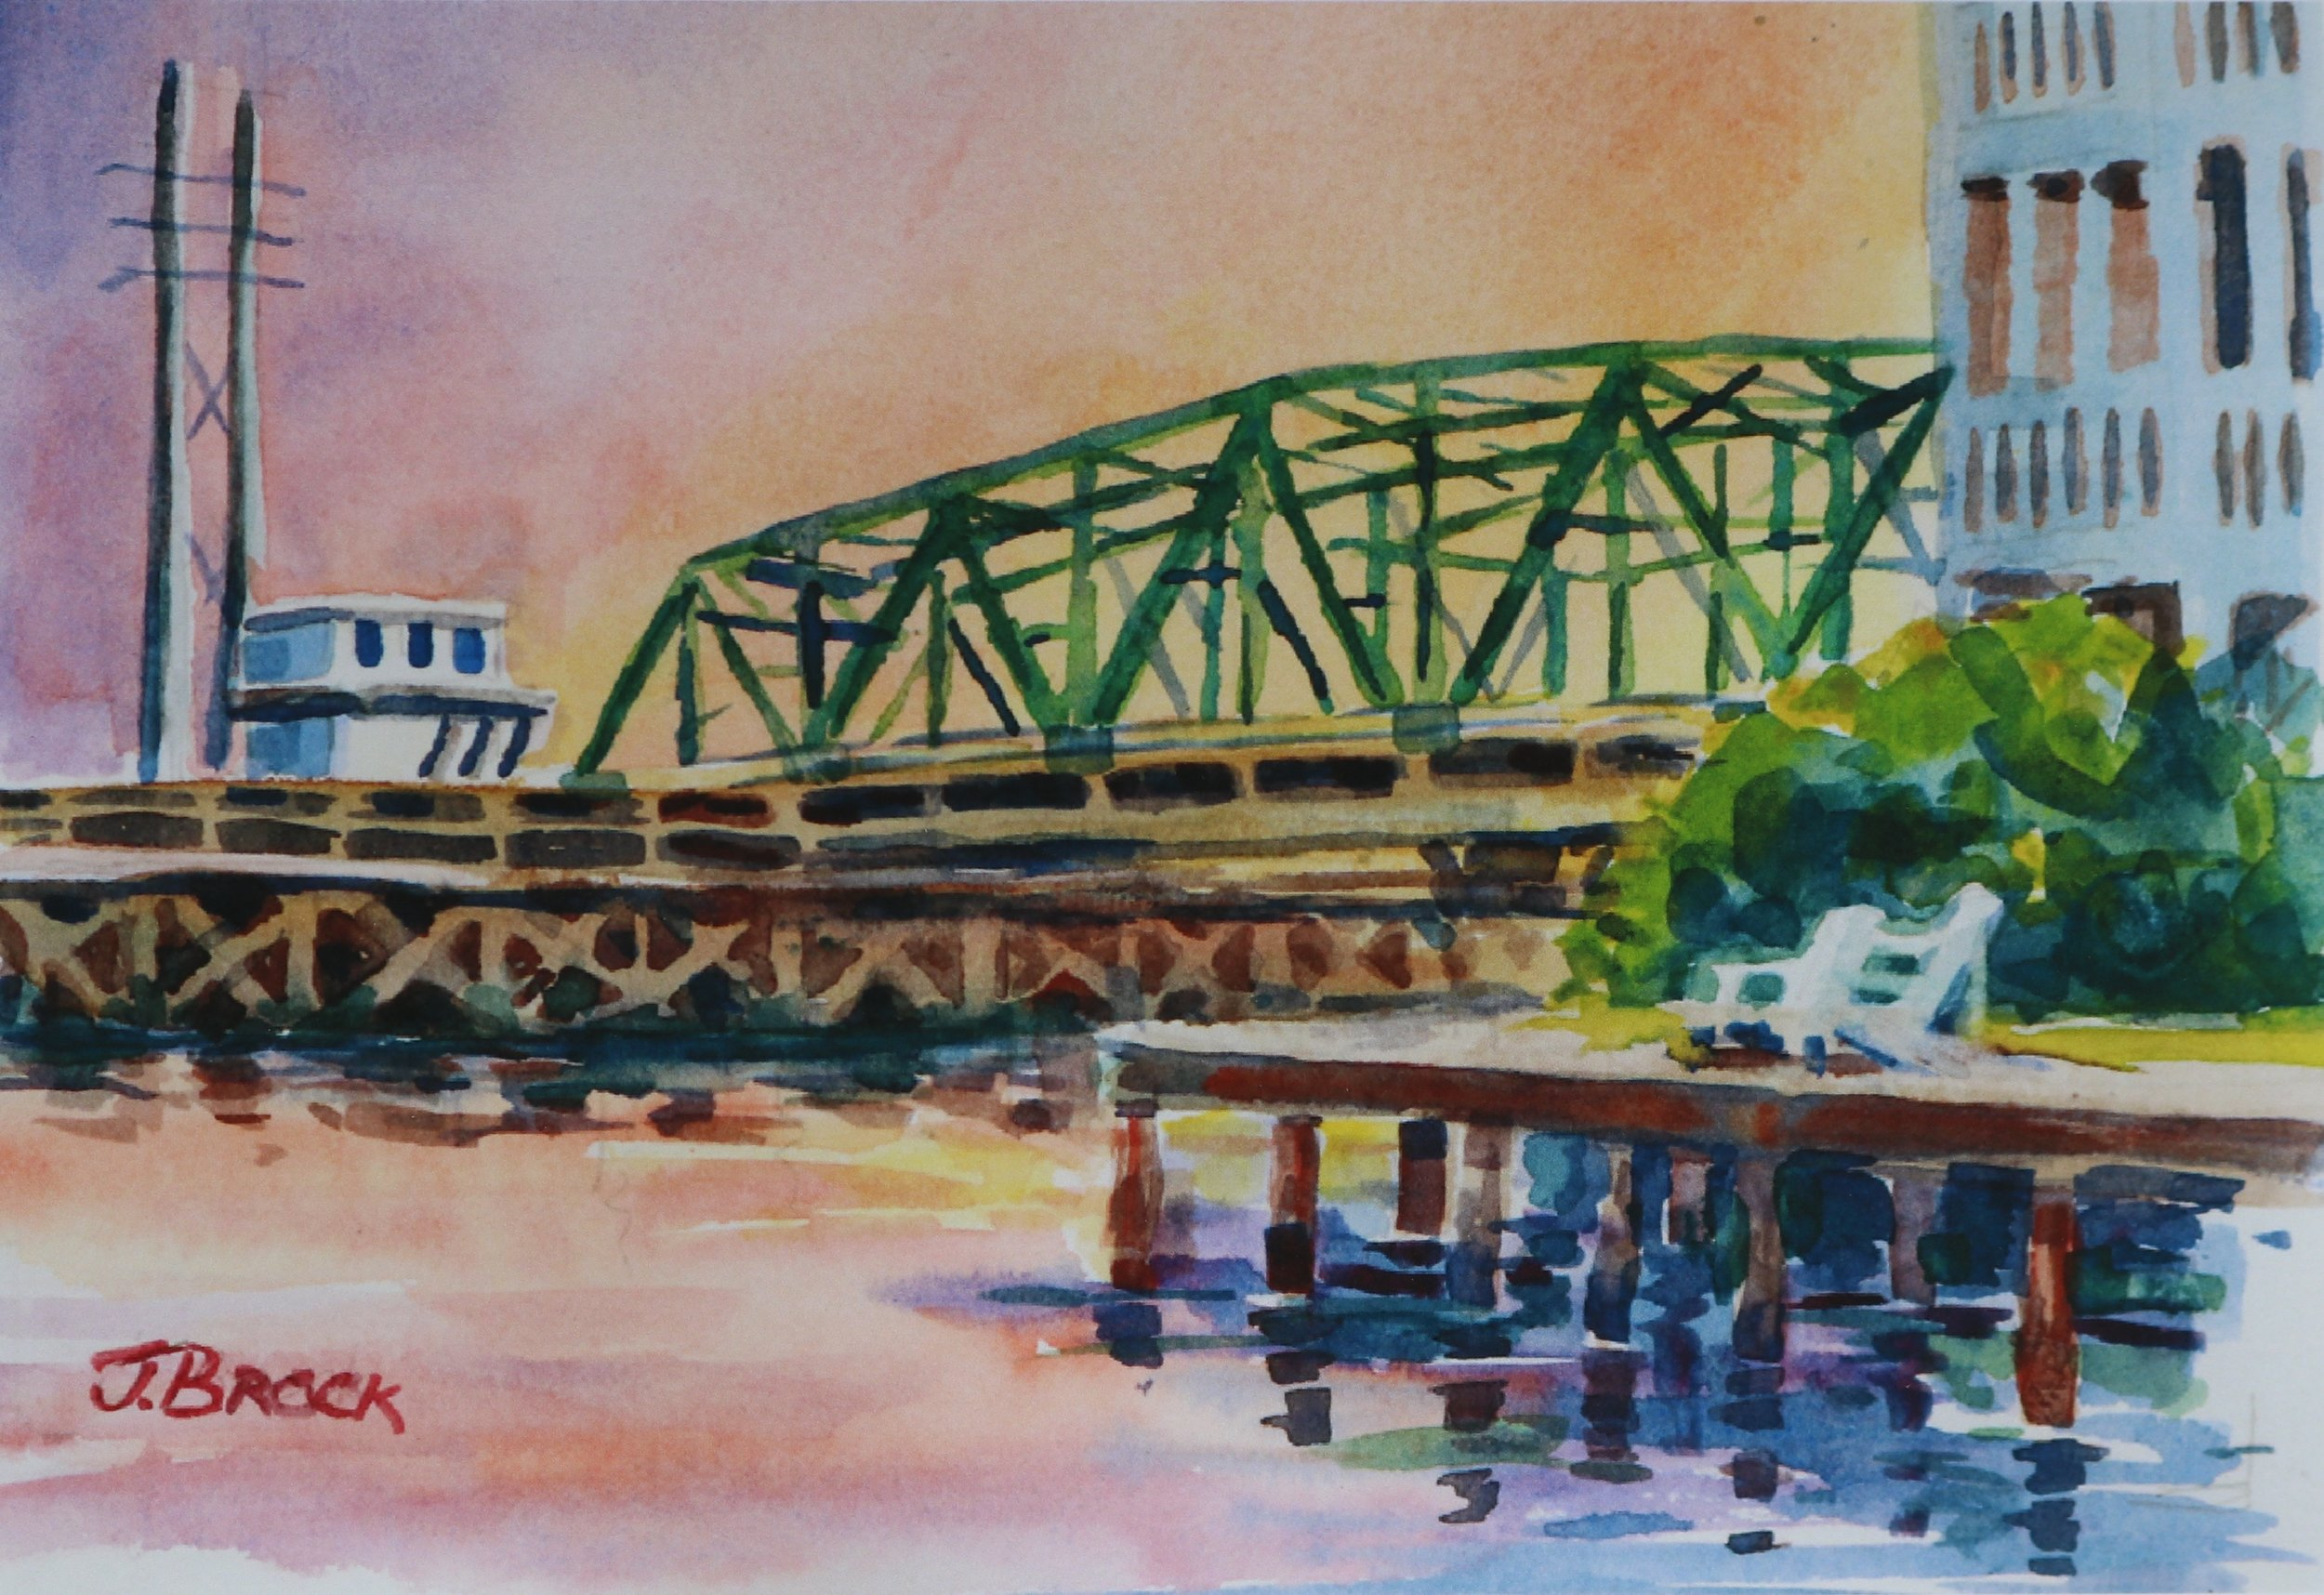 Watercolor, 5x7  NFS  Prints with Acid Free Mats Available  Image- 4.5x6.5, matted- 8x10 $28     Image- 7.5x9.5, matted- 11x14 $48